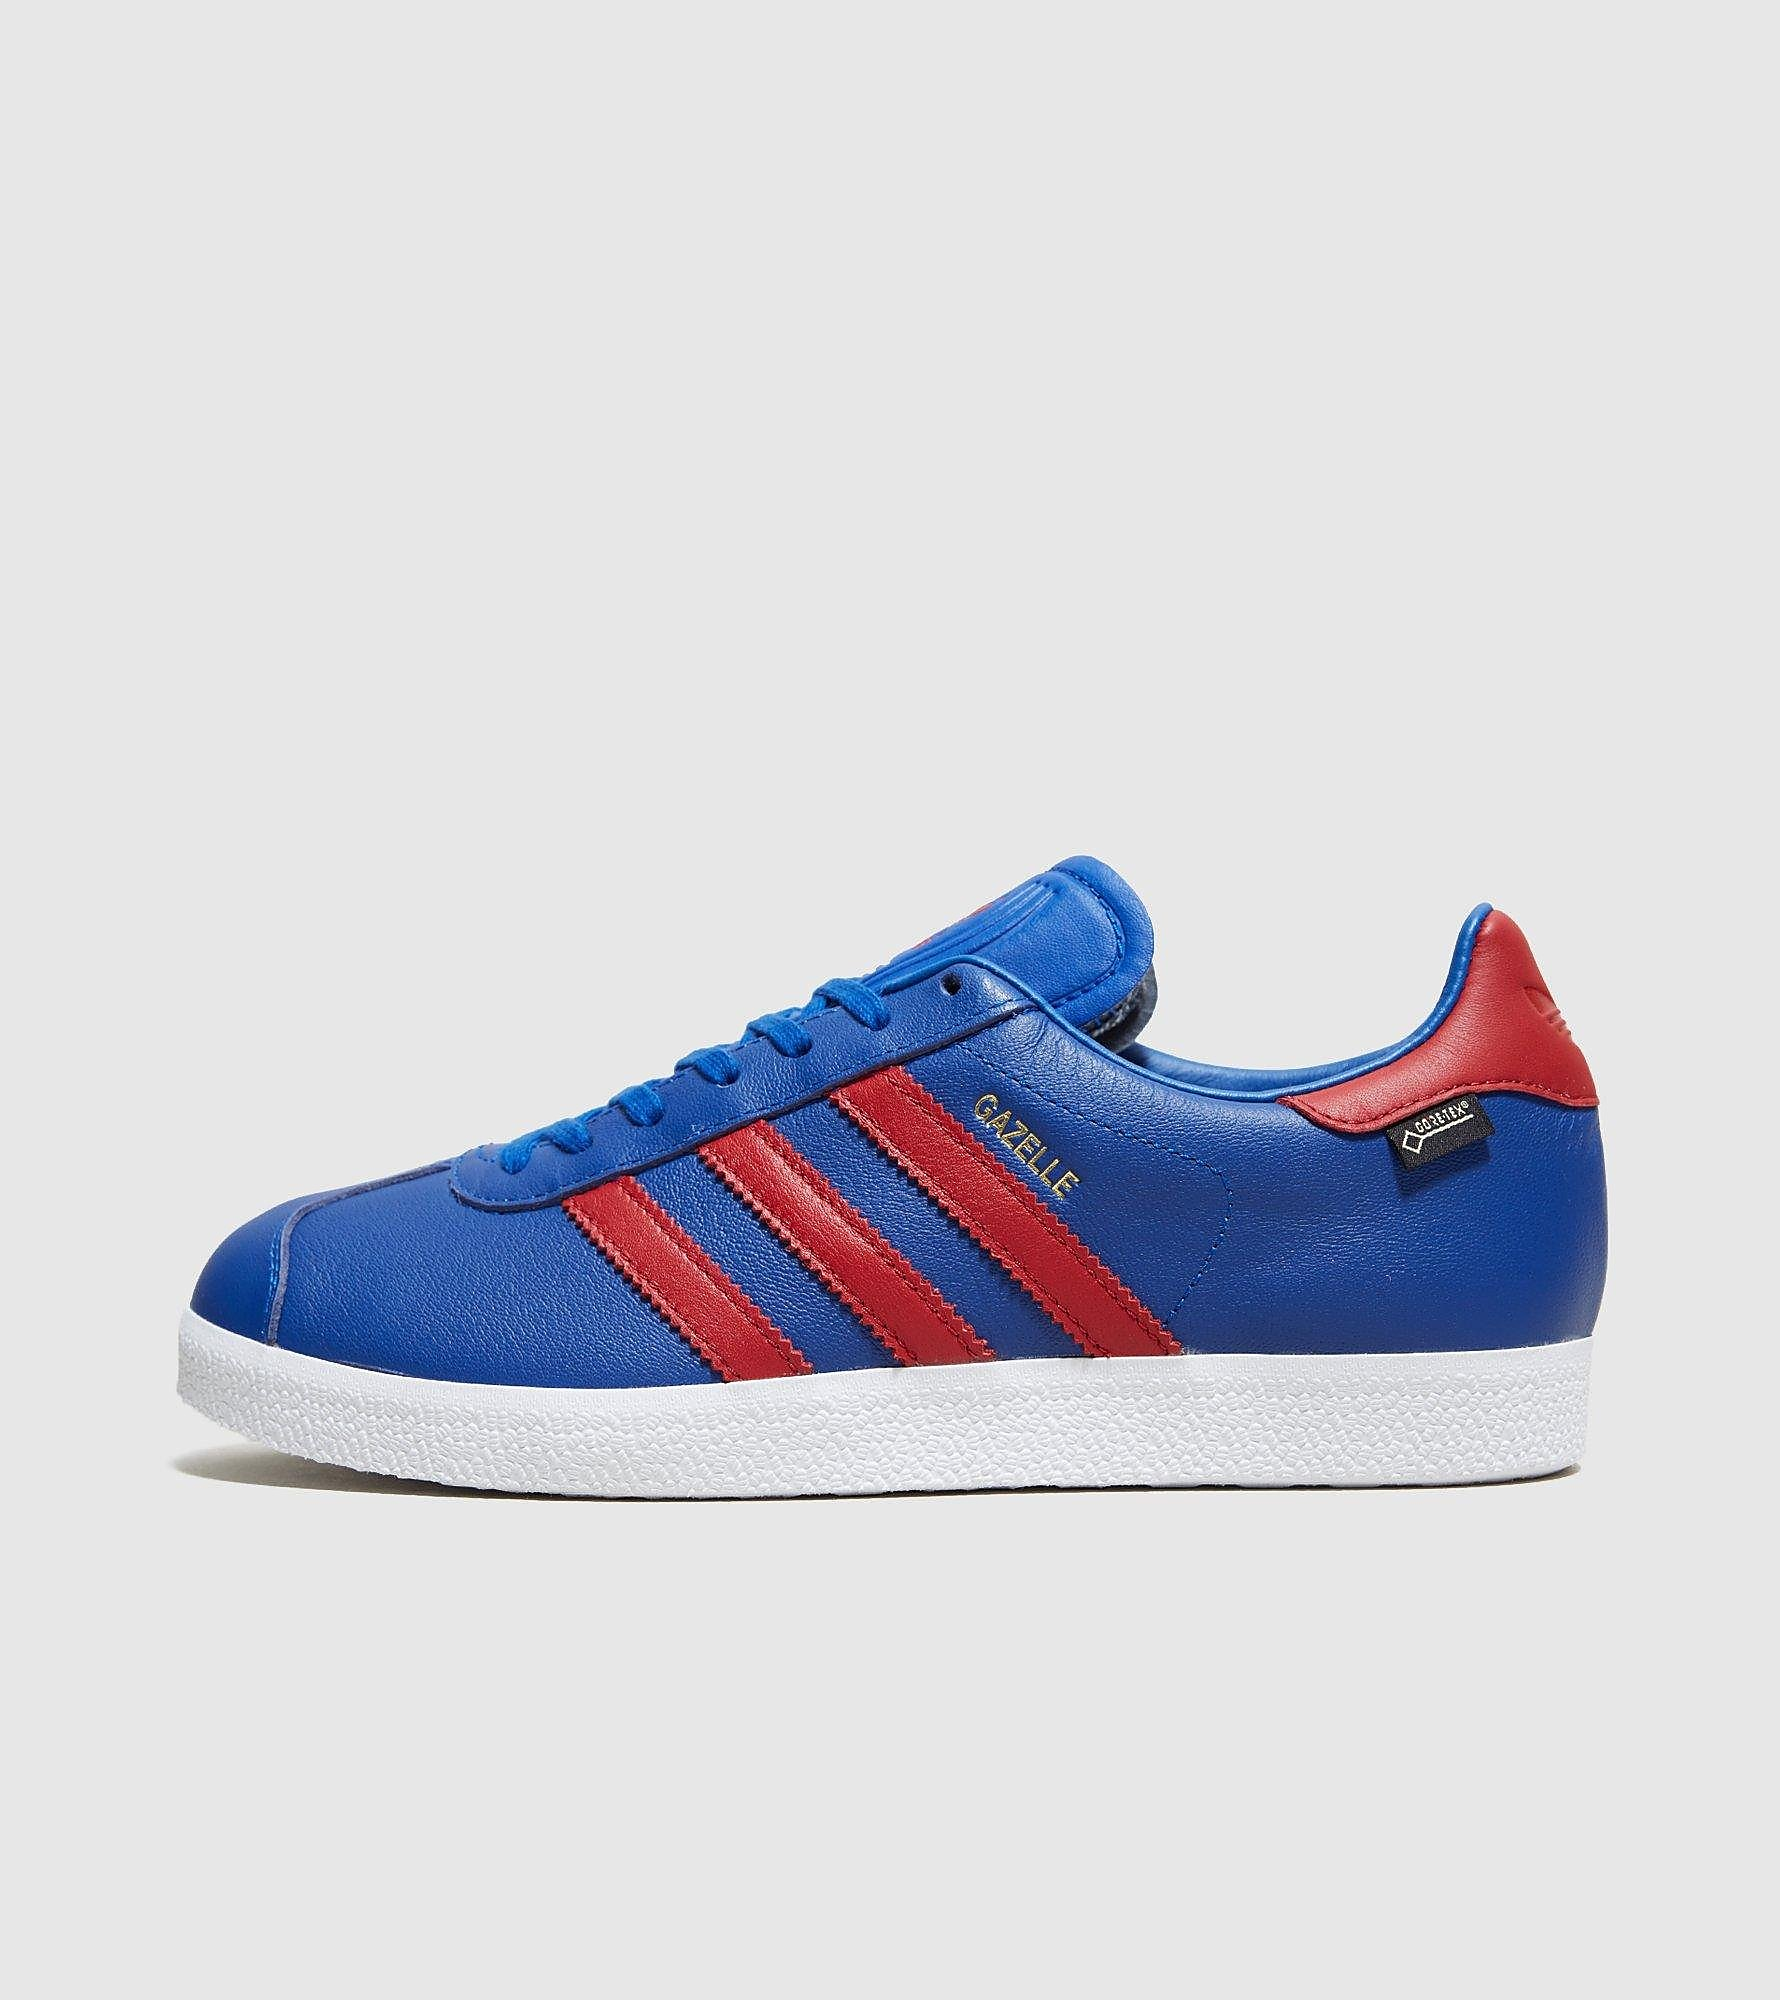 adidas Originals Gazelle Gore-Tex 'Paris' - size? Exclusive